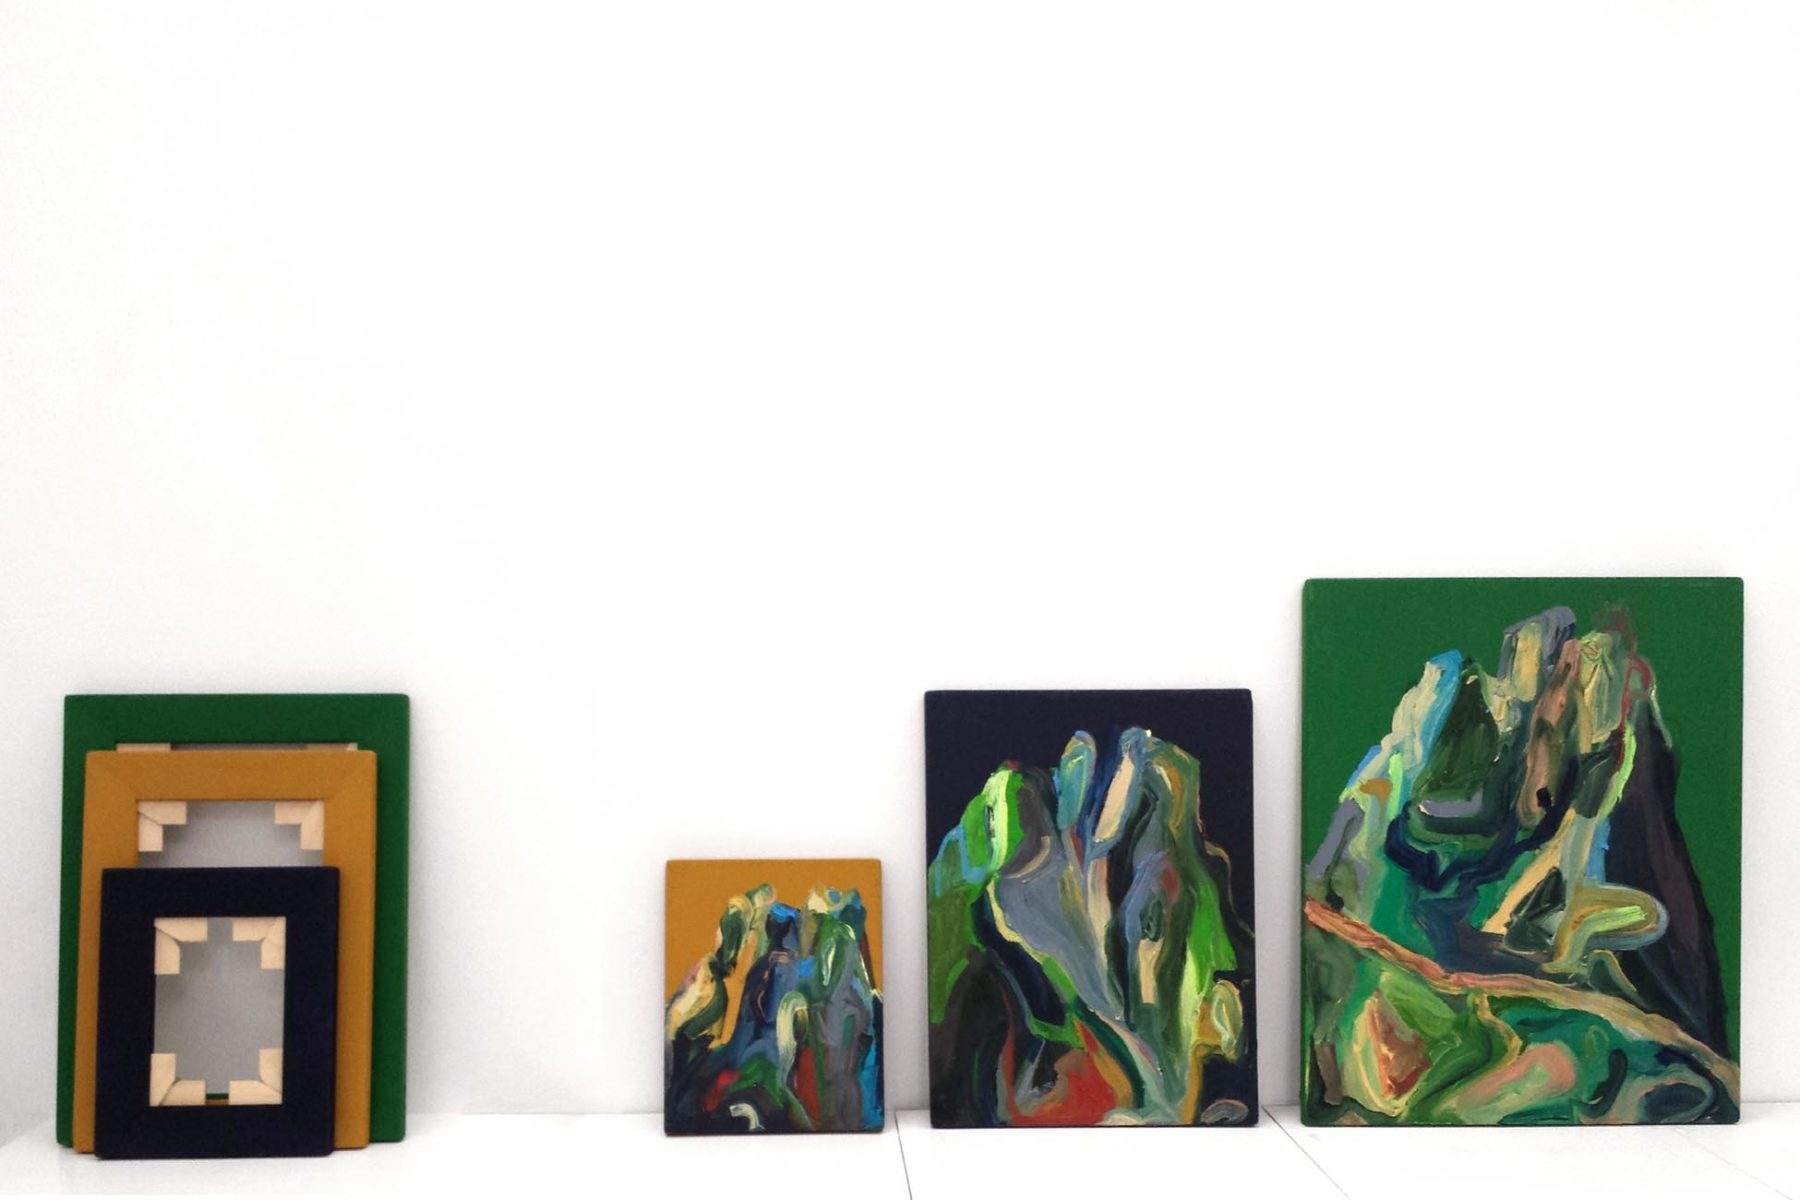 Matteo Fato, Senza titolo dal vero, 2013, oil on canvas, frames, enviromental dimensions